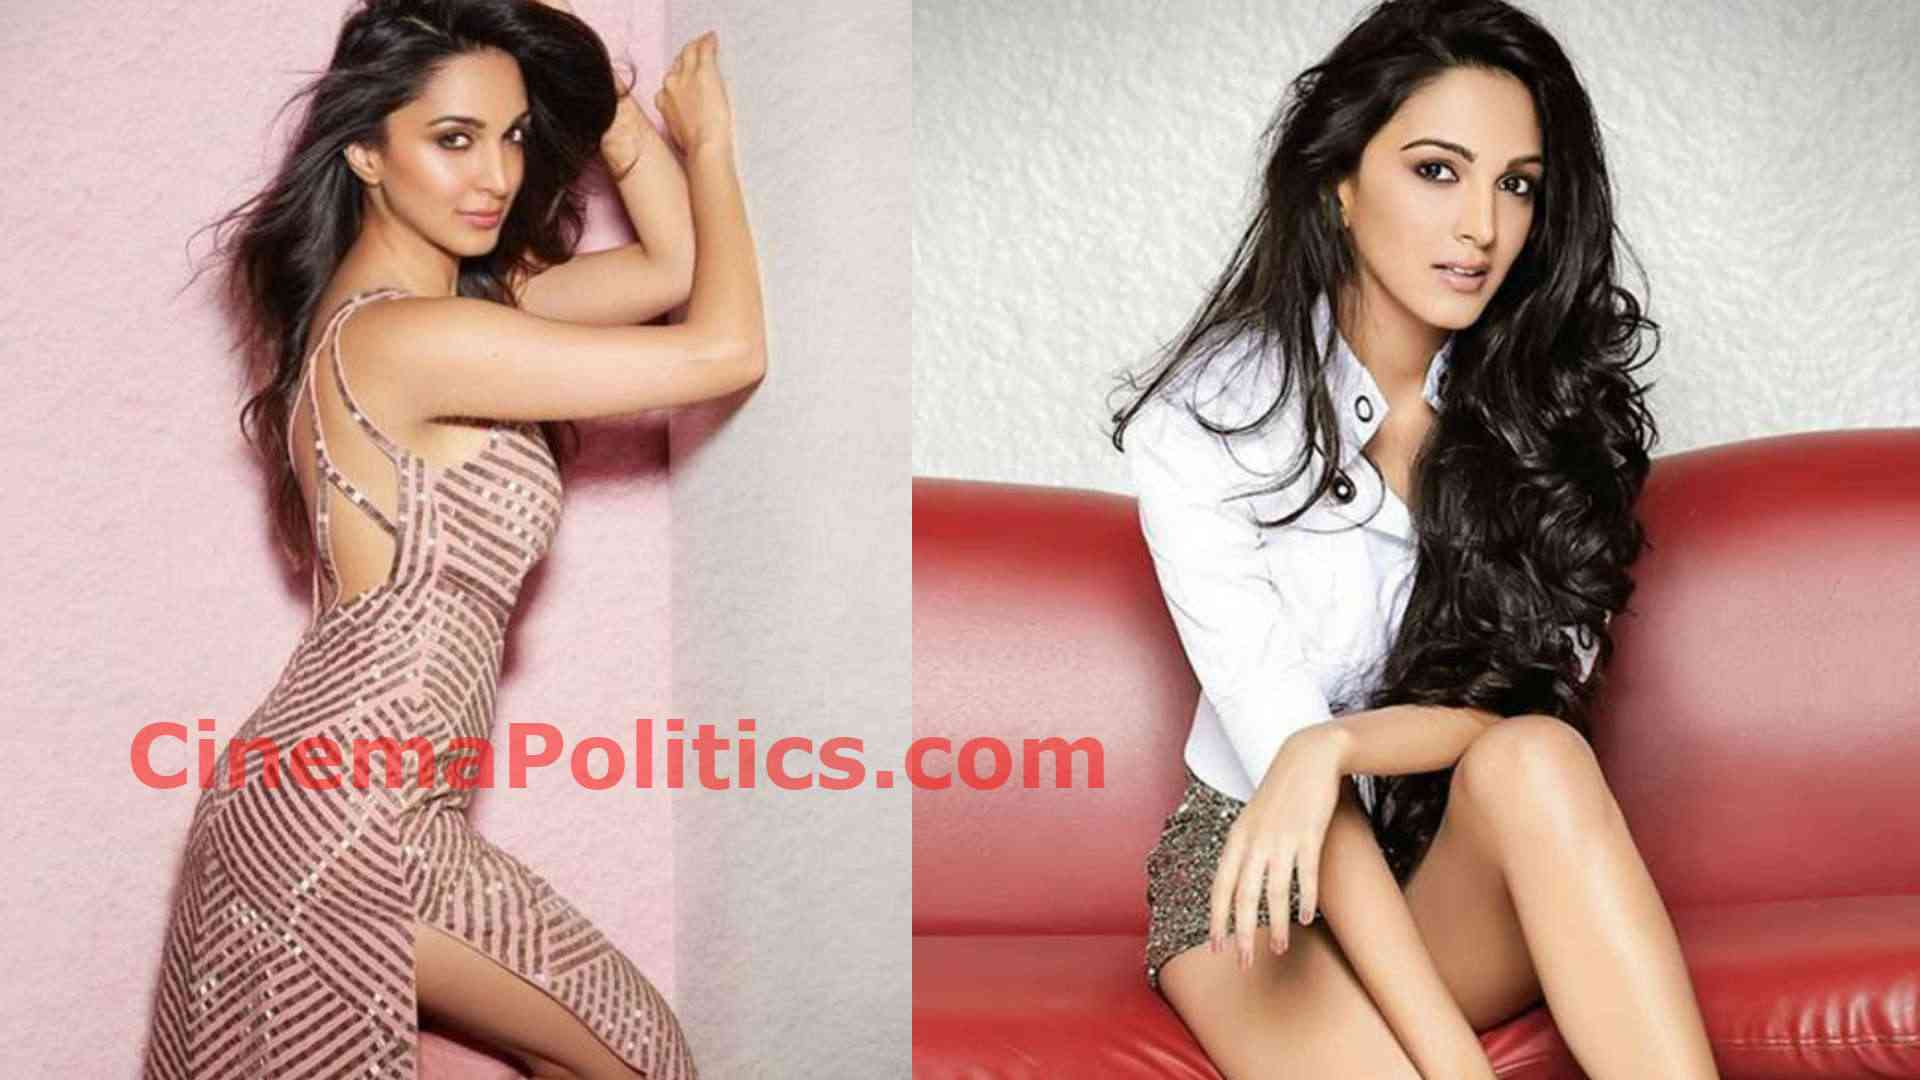 Bharath Ane Nenu Heroine Kiara Advani has done Too Hot Photoshoot